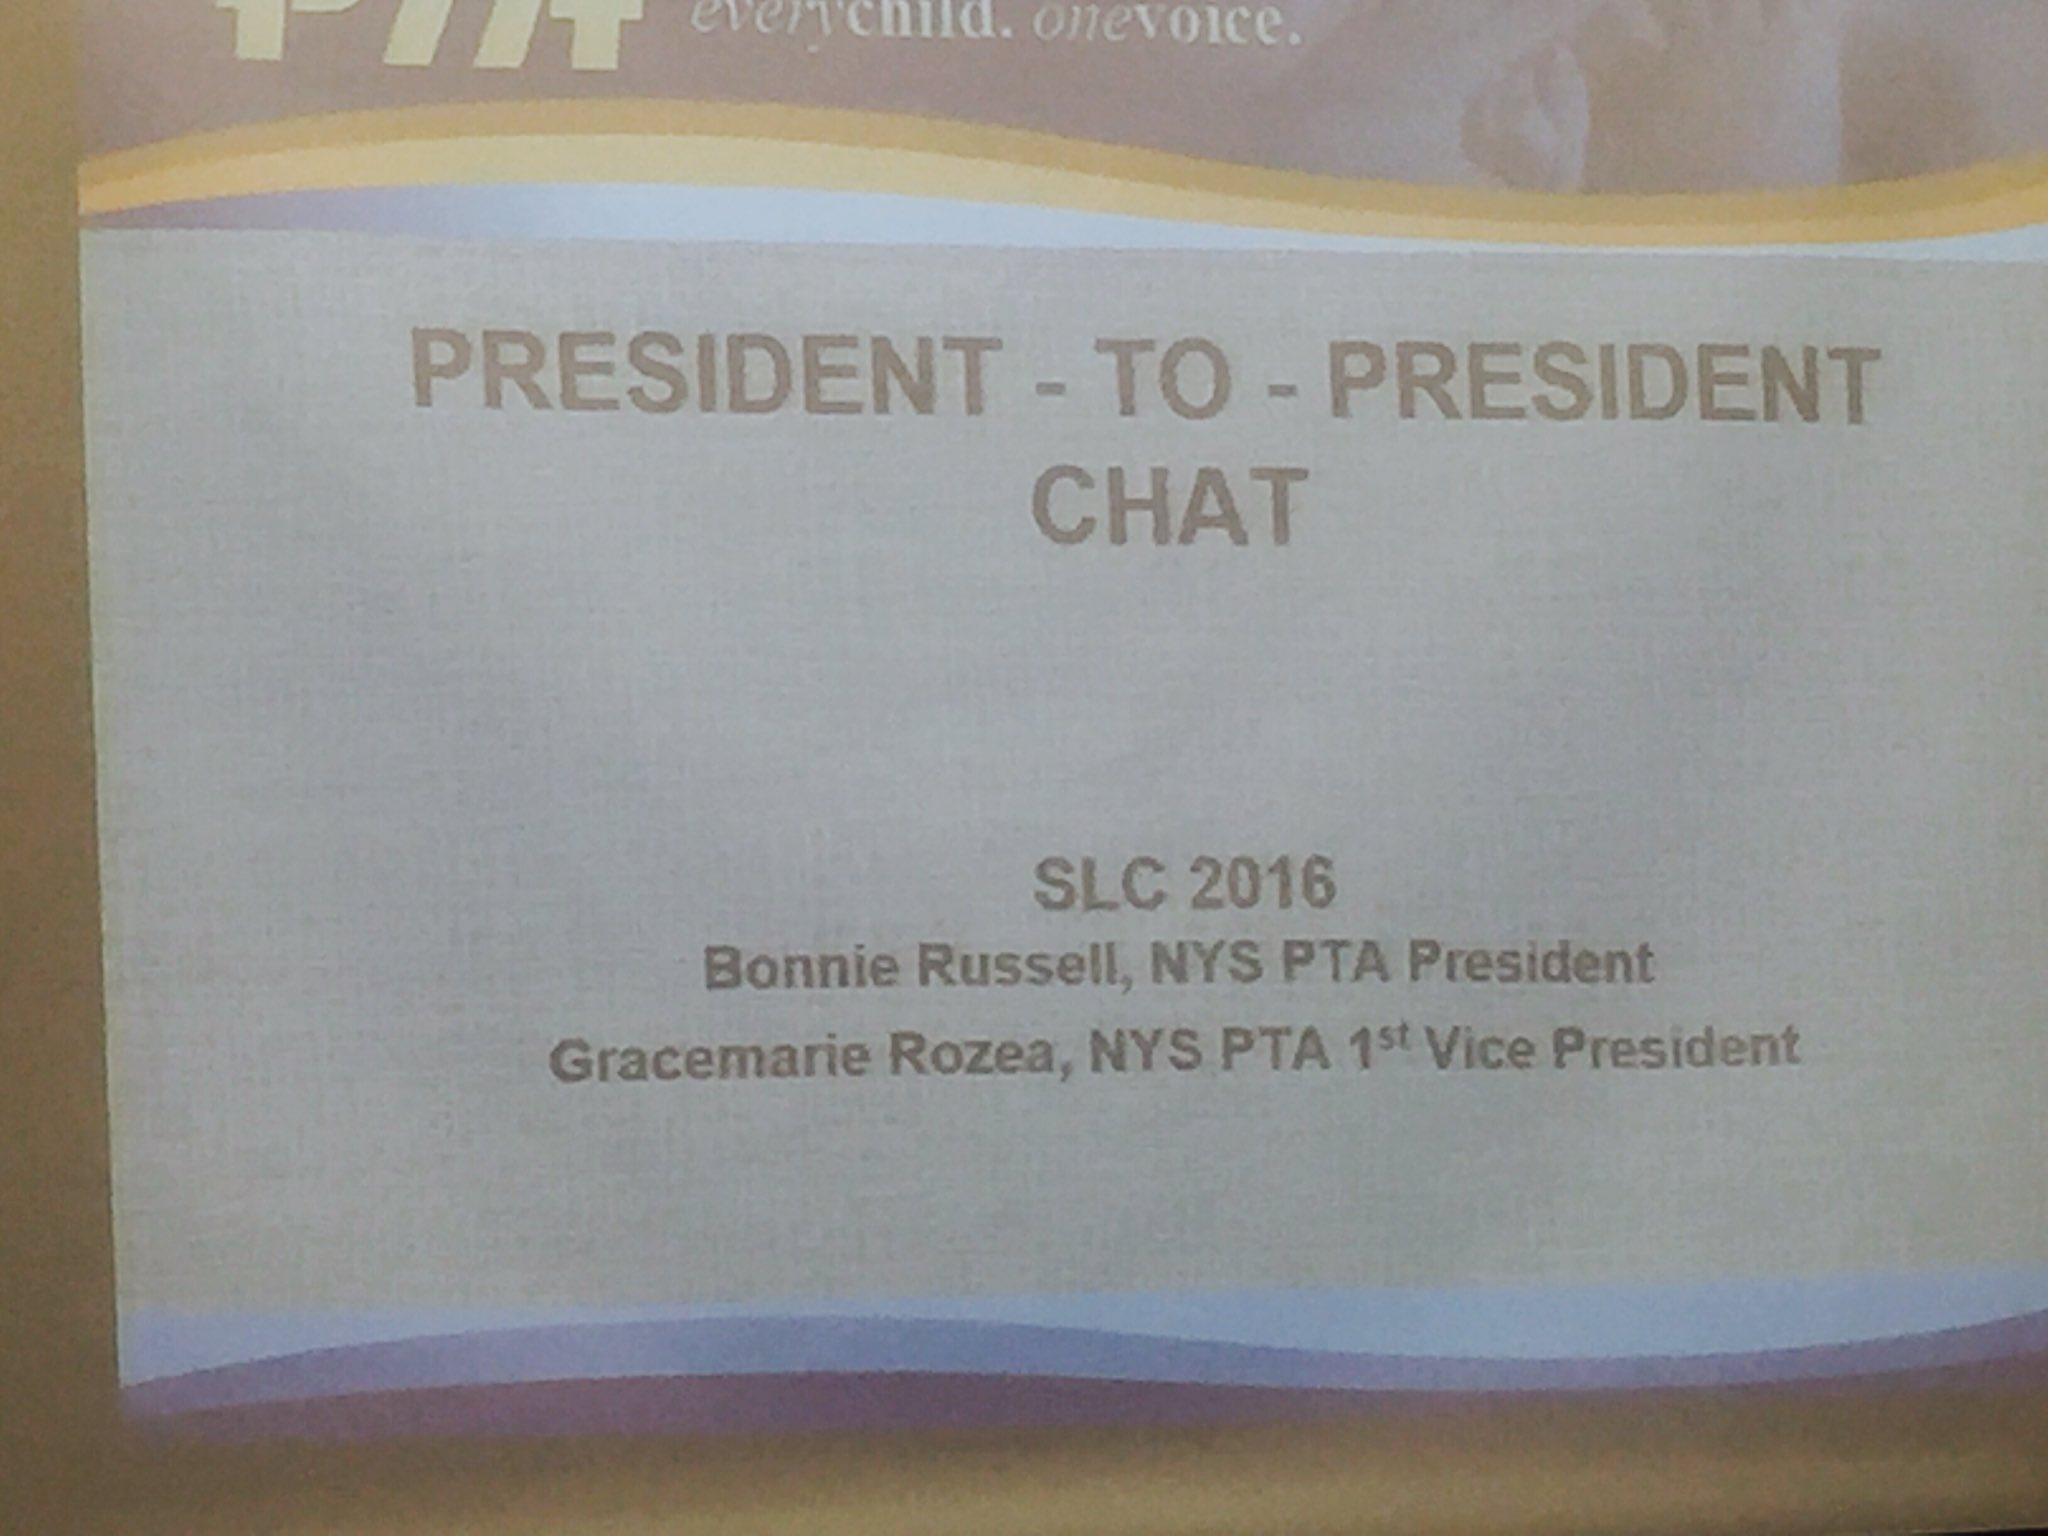 Day 2 of SLC - Awesome  Informal chat with @NYSPTA president Bonnie Russell #NYSPTASLC16 https://t.co/FWPs4iZOGT